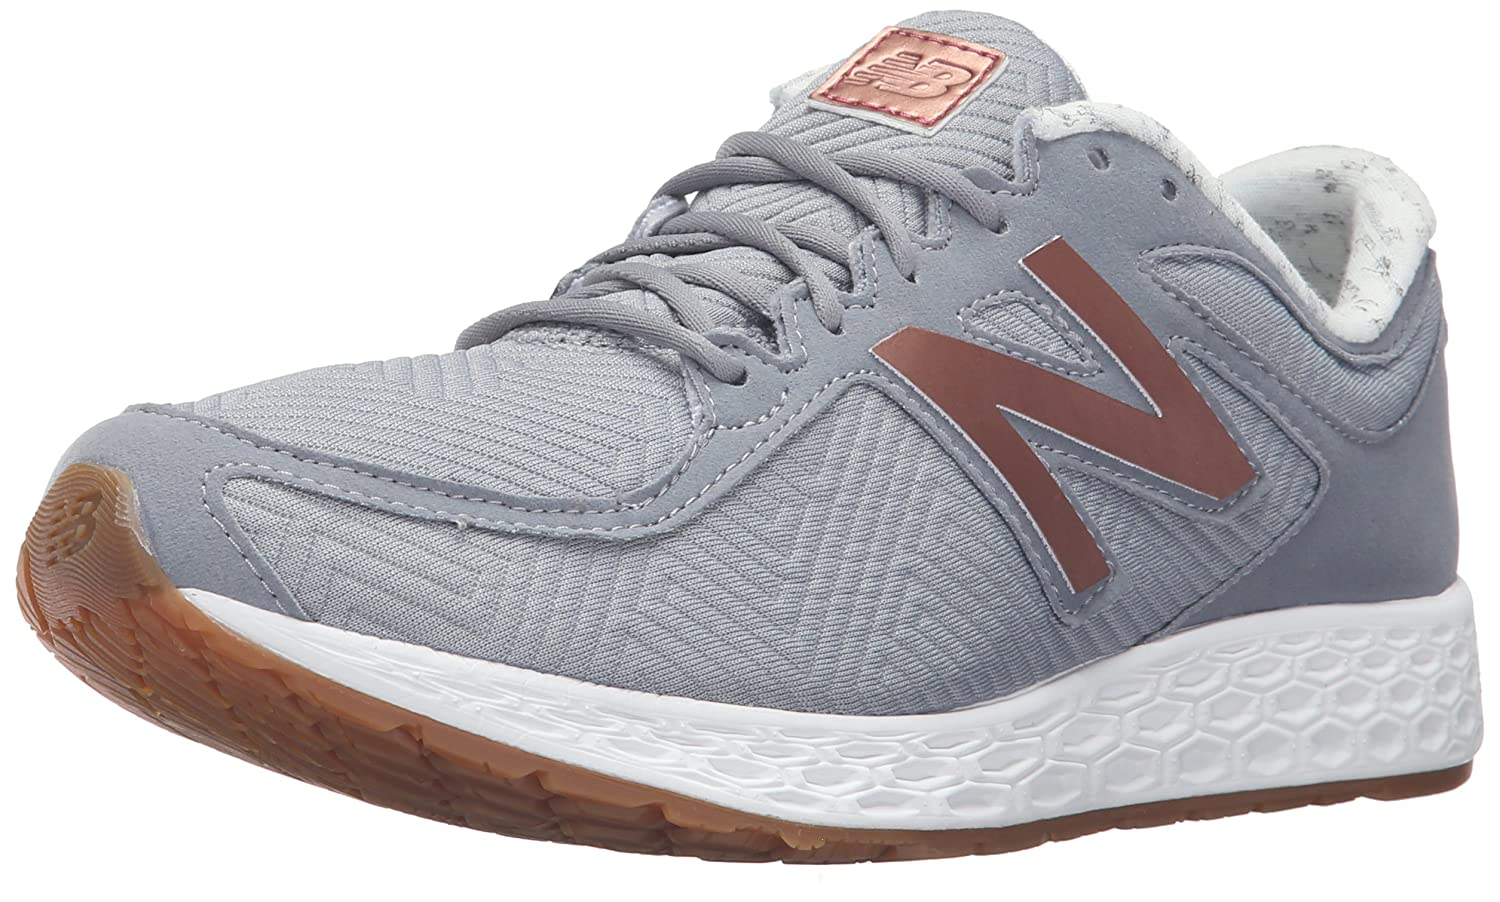 Women's Fresh Foam Zante v2 Casual Lifestyle Shoe by New Balance, available on amazon.com Alessandra Ambrosio Shoes Exact Product